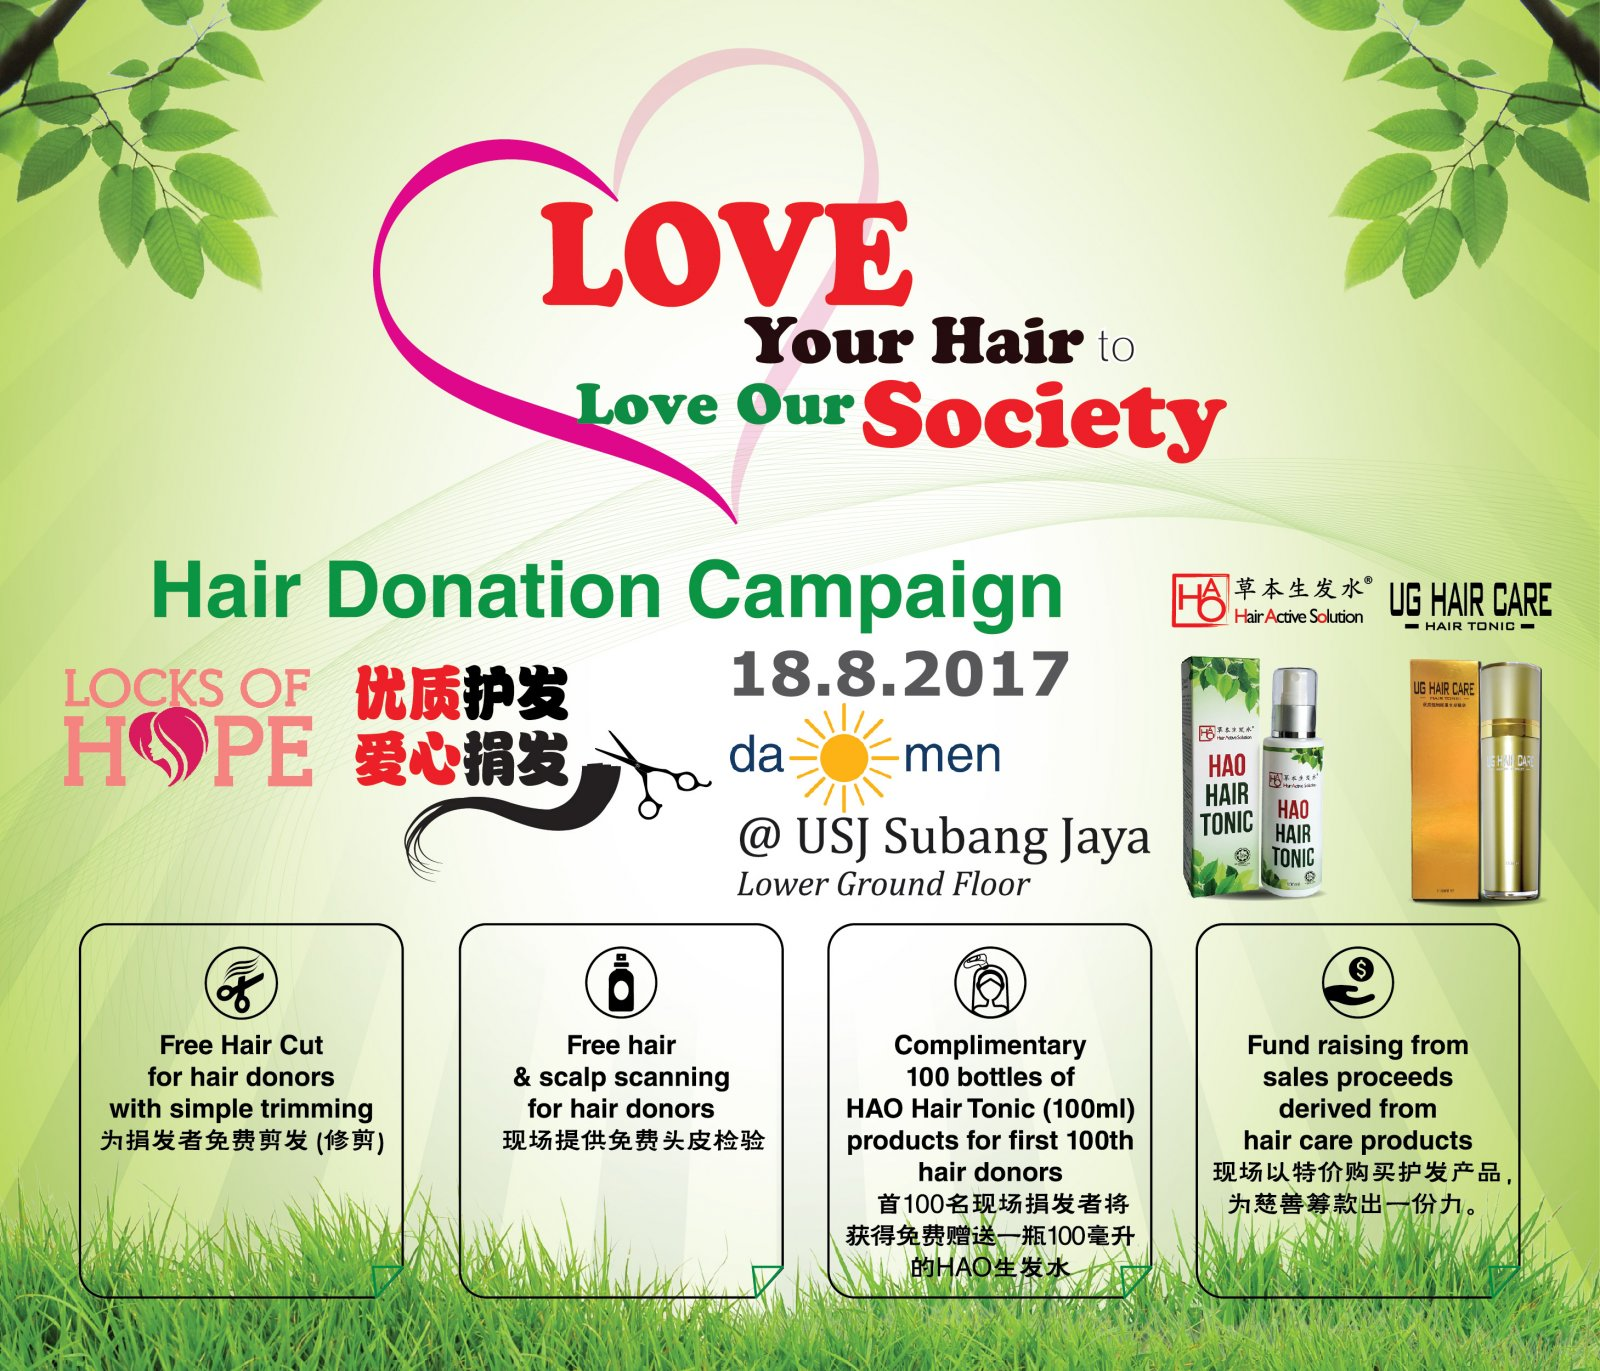 Hair Donation Campaign with Locks Of Hope